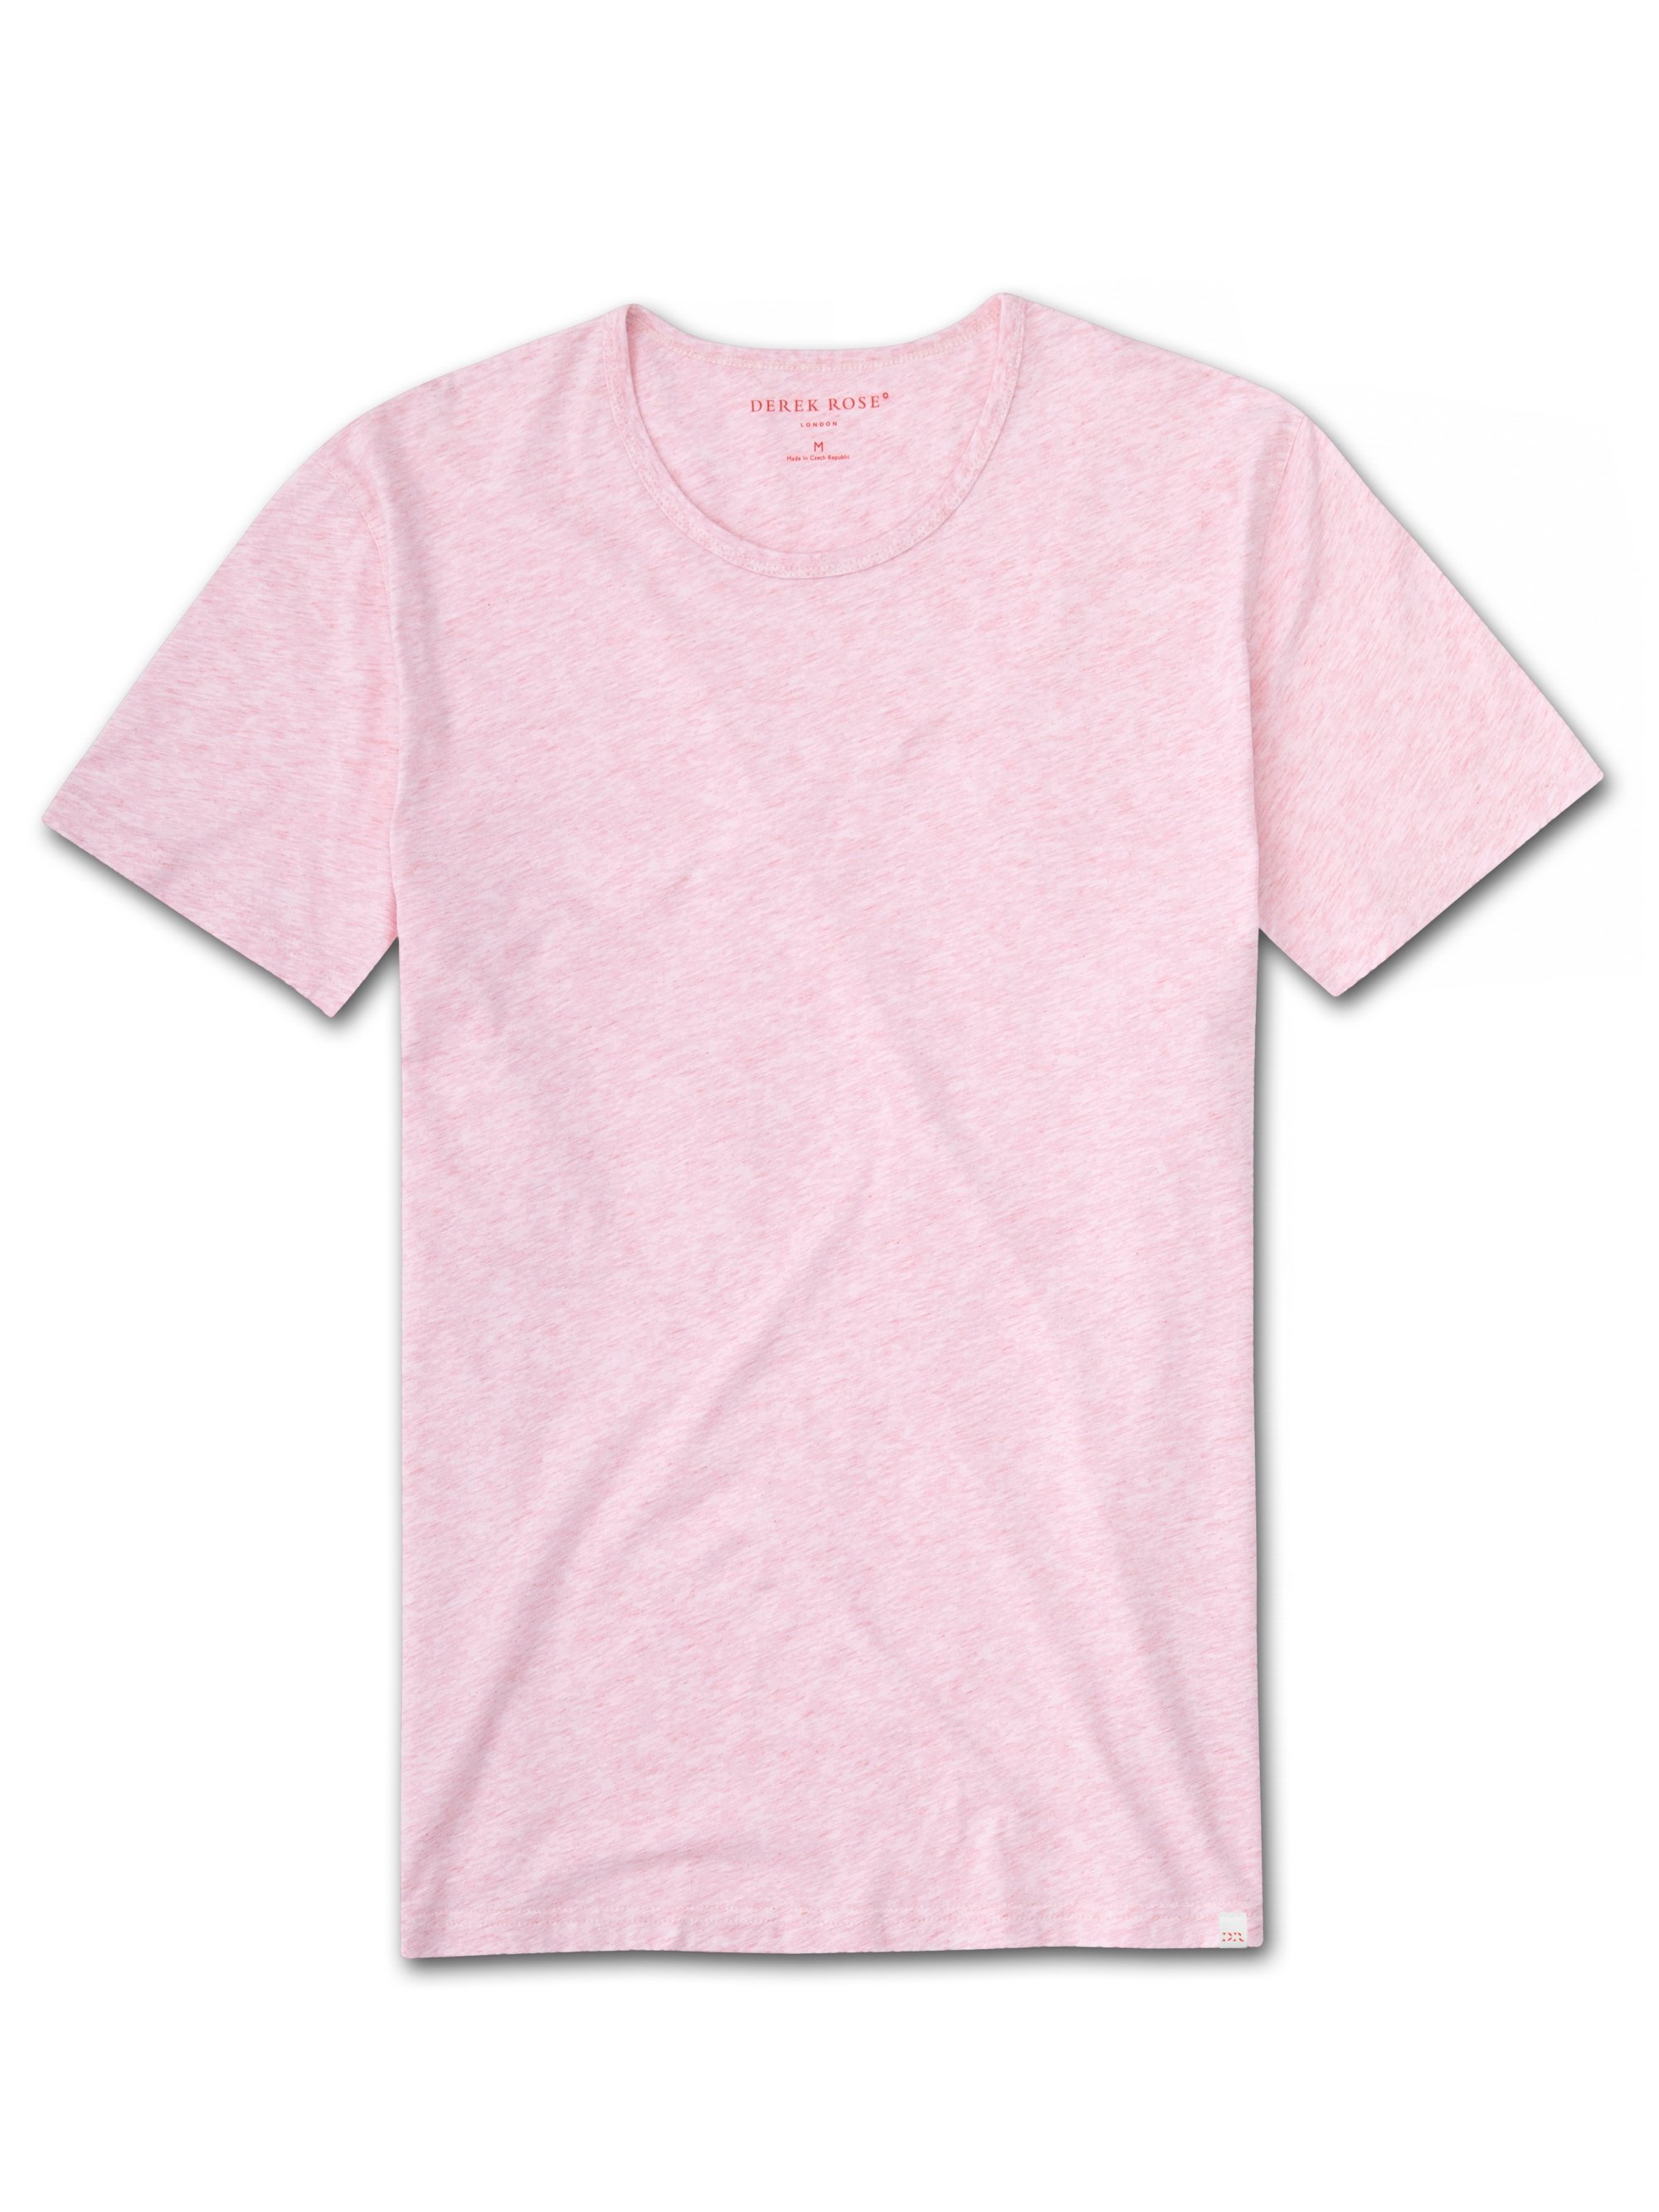 Men's Short Sleeve T-Shirt Reece Pure Cotton Pink